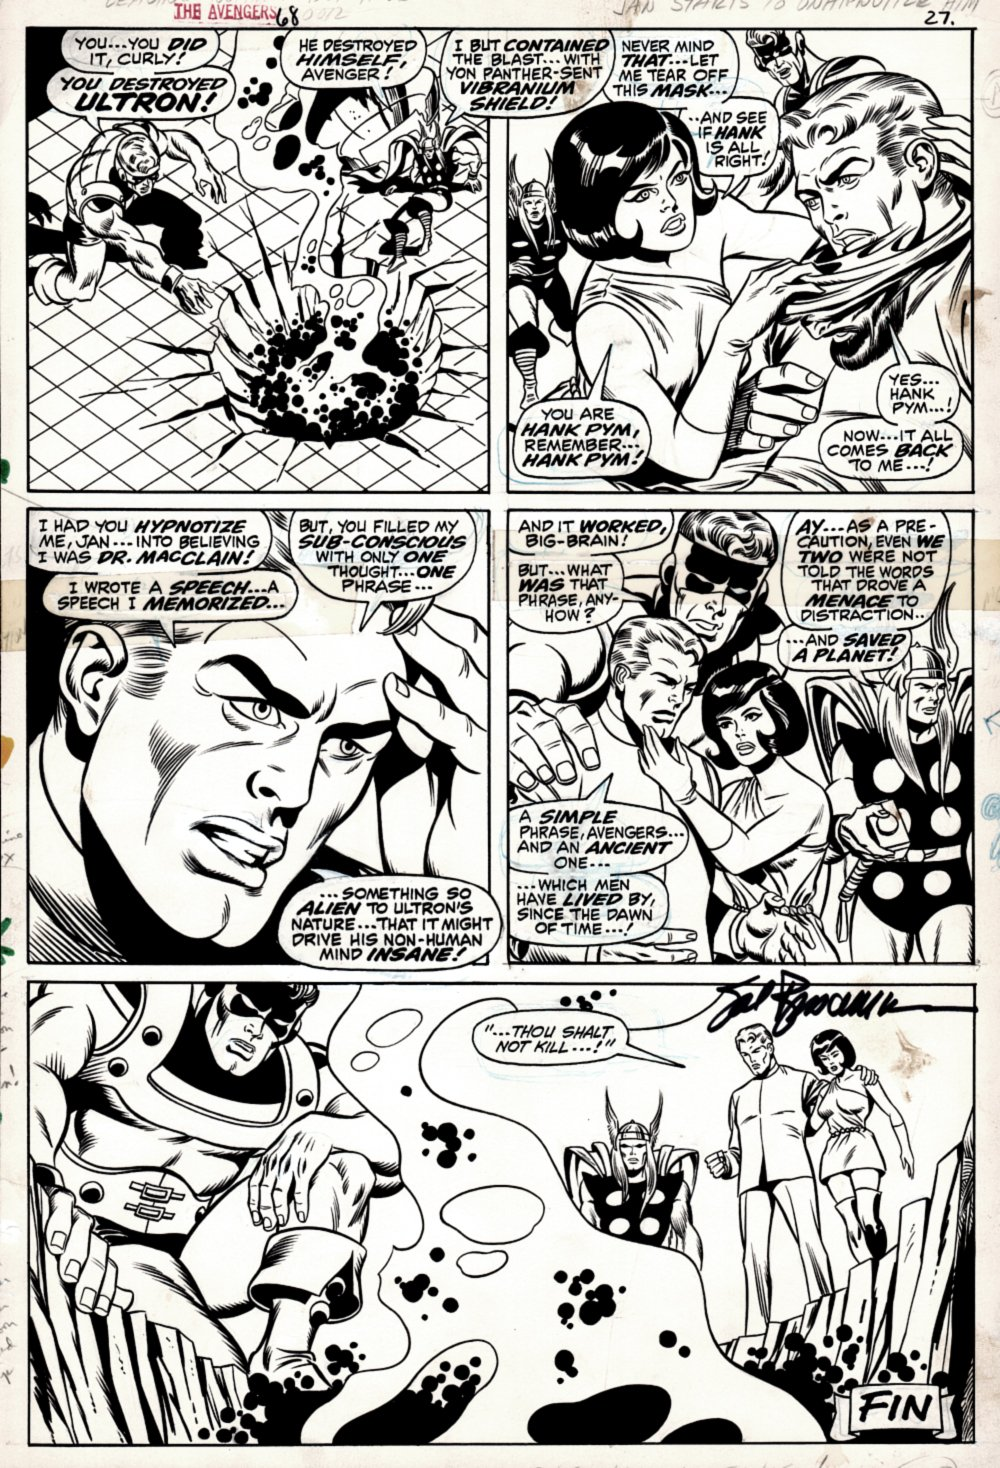 Avengers #68 Last Page (THE DEATH OF ULTRON! Goliath, Thor, Wasp, Henry Pym!) 1969